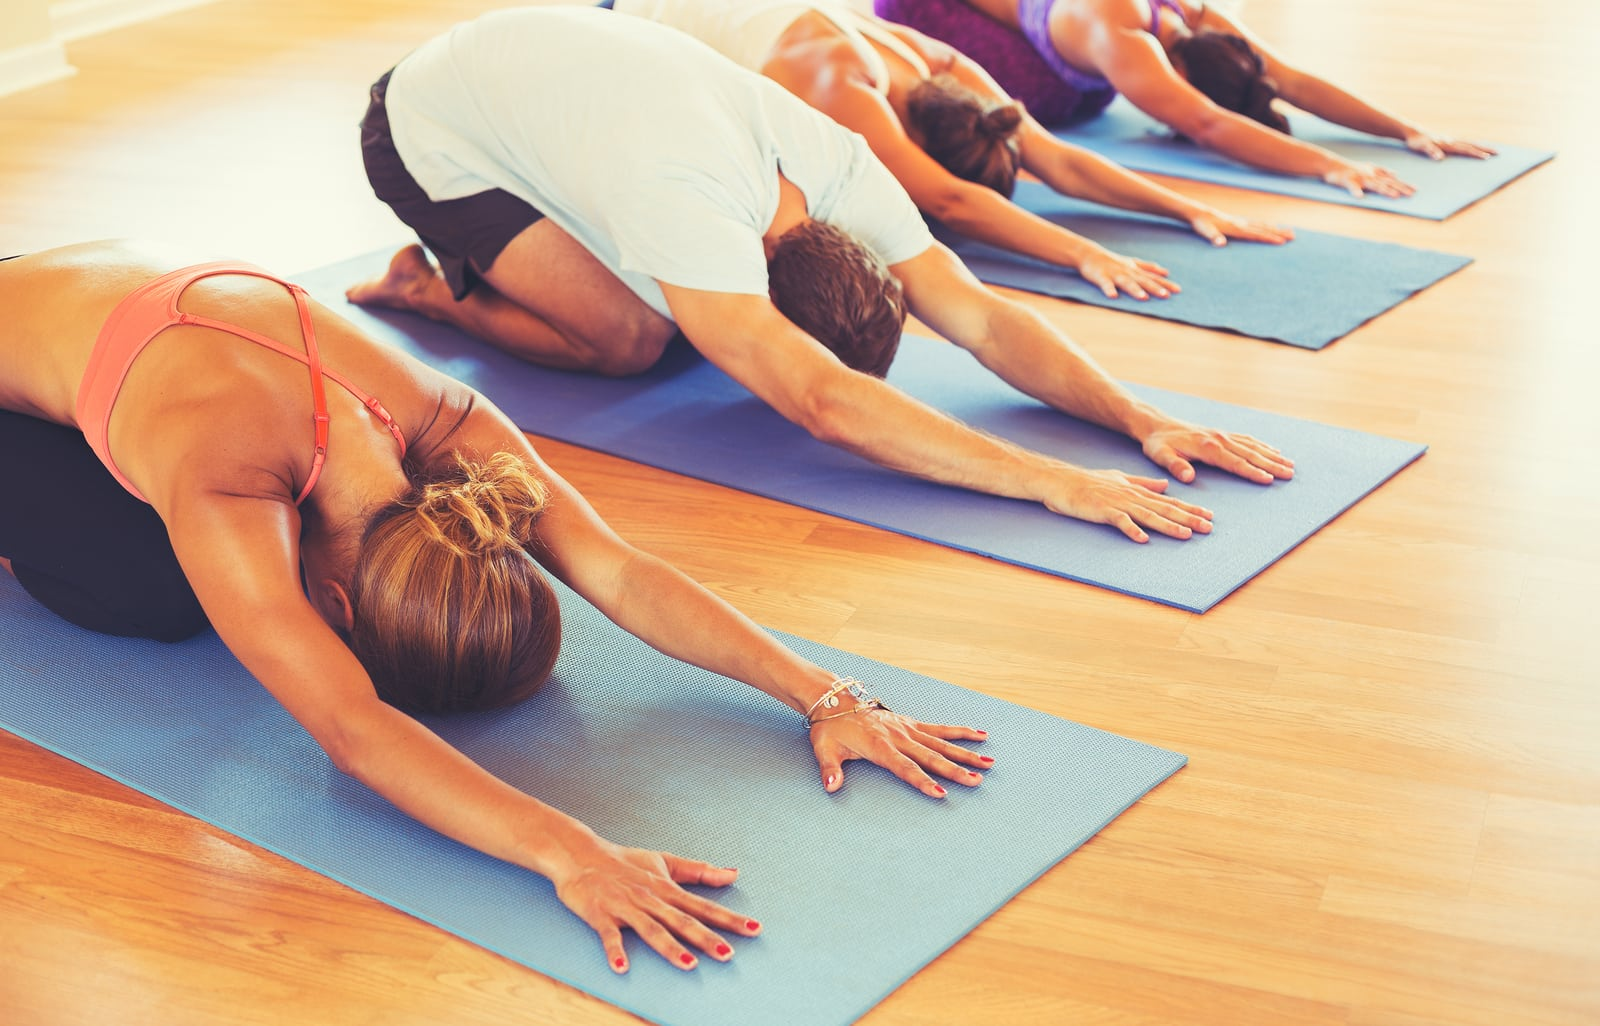 Is yoga exercise good for athletes? 4